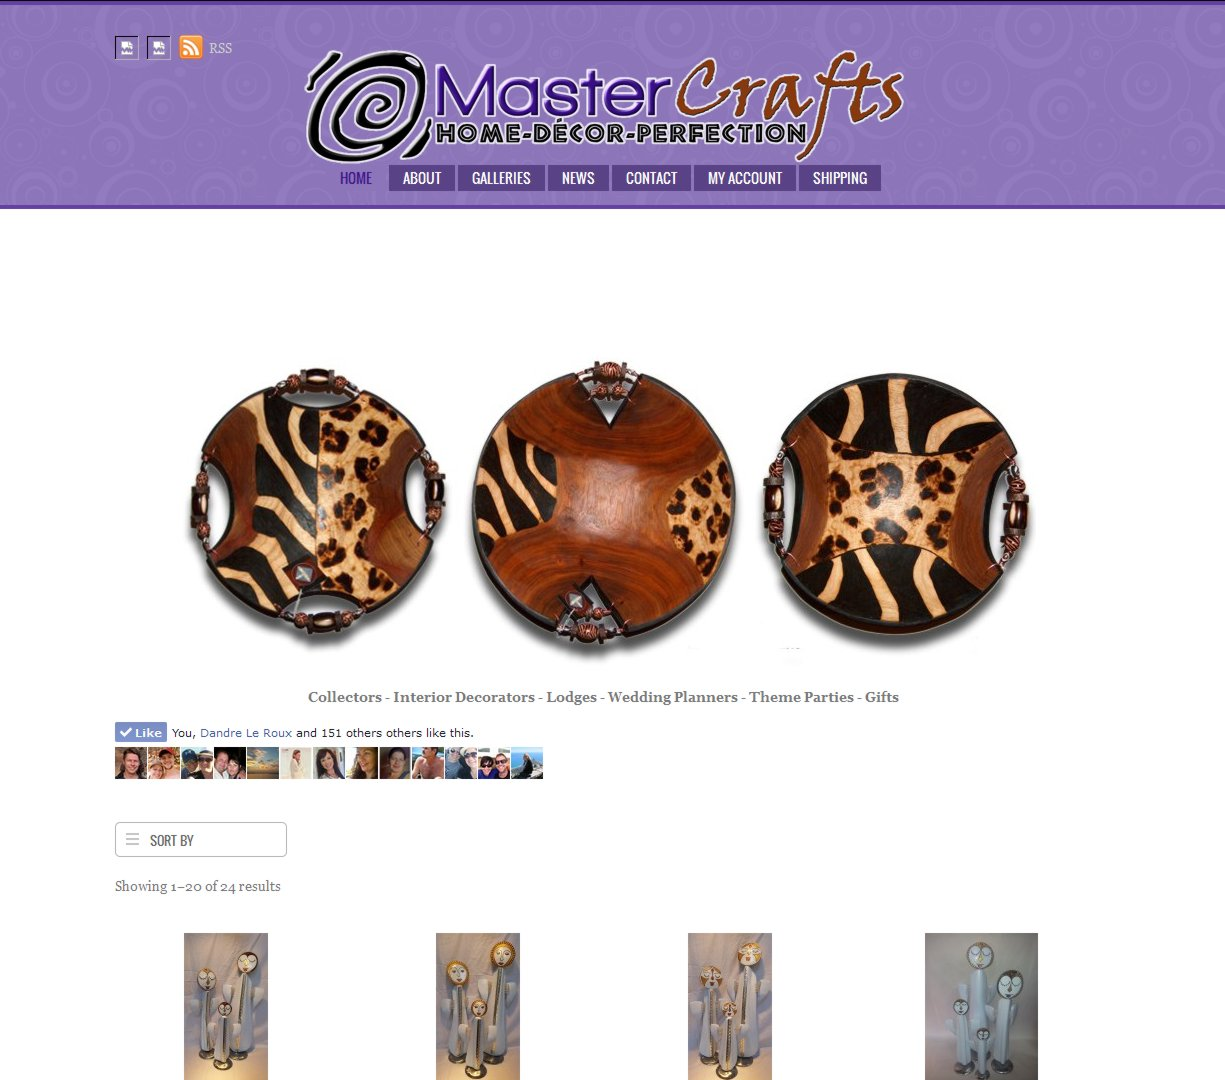 Co Domain Name: Domain Name Www.crafters.co.za For Sale